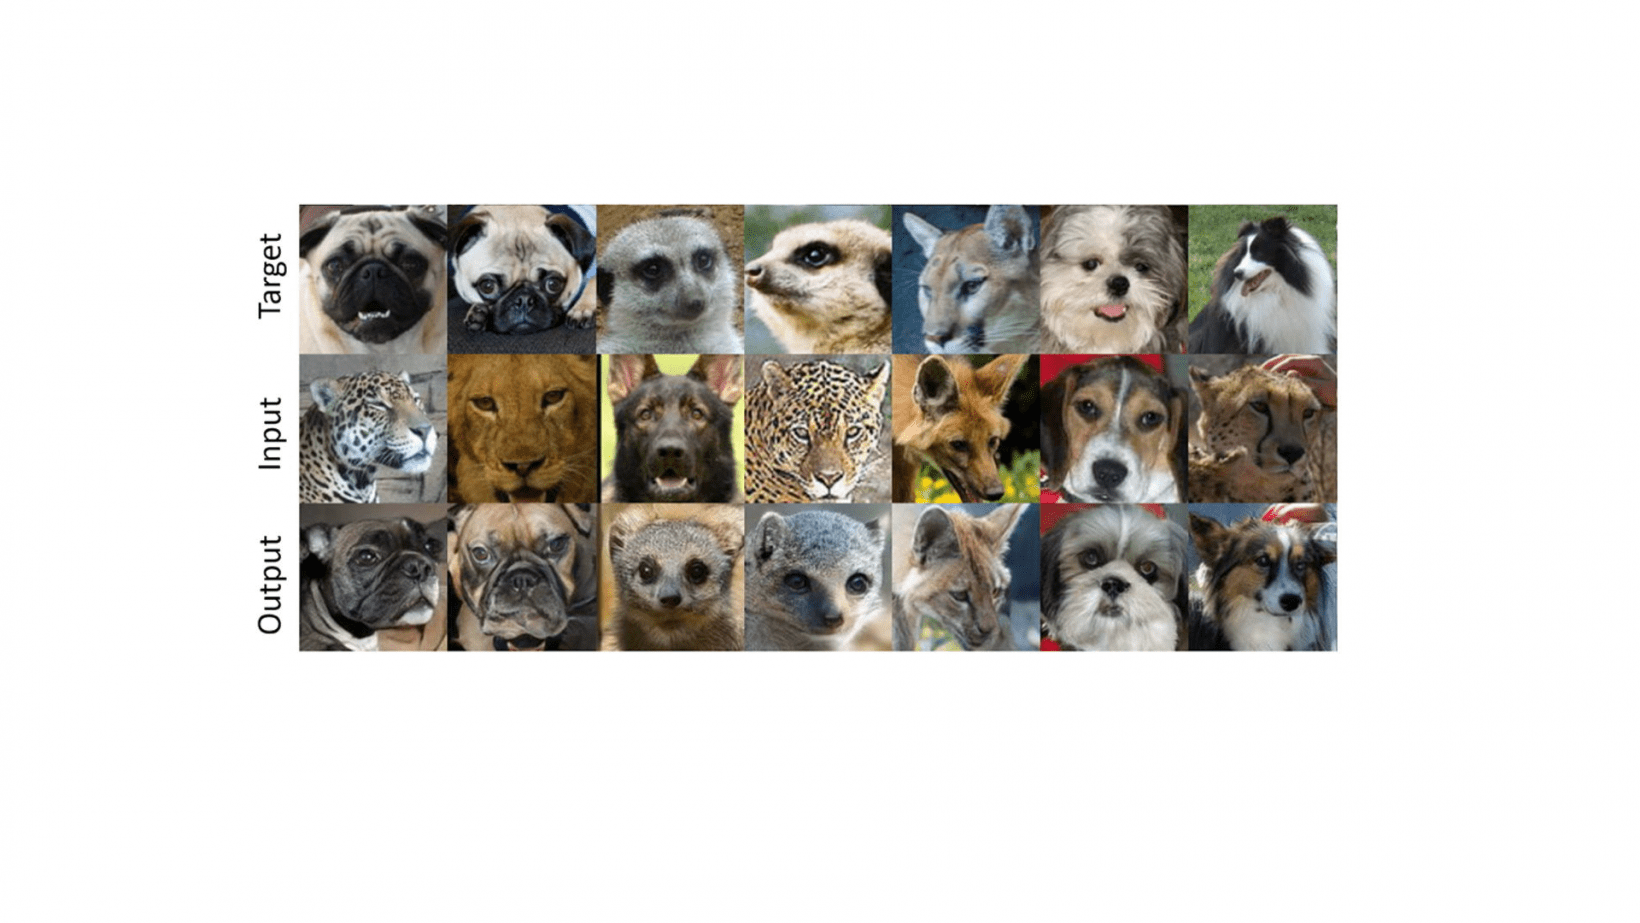 NVIDIA's new AI can translate your pet's smile on a lion